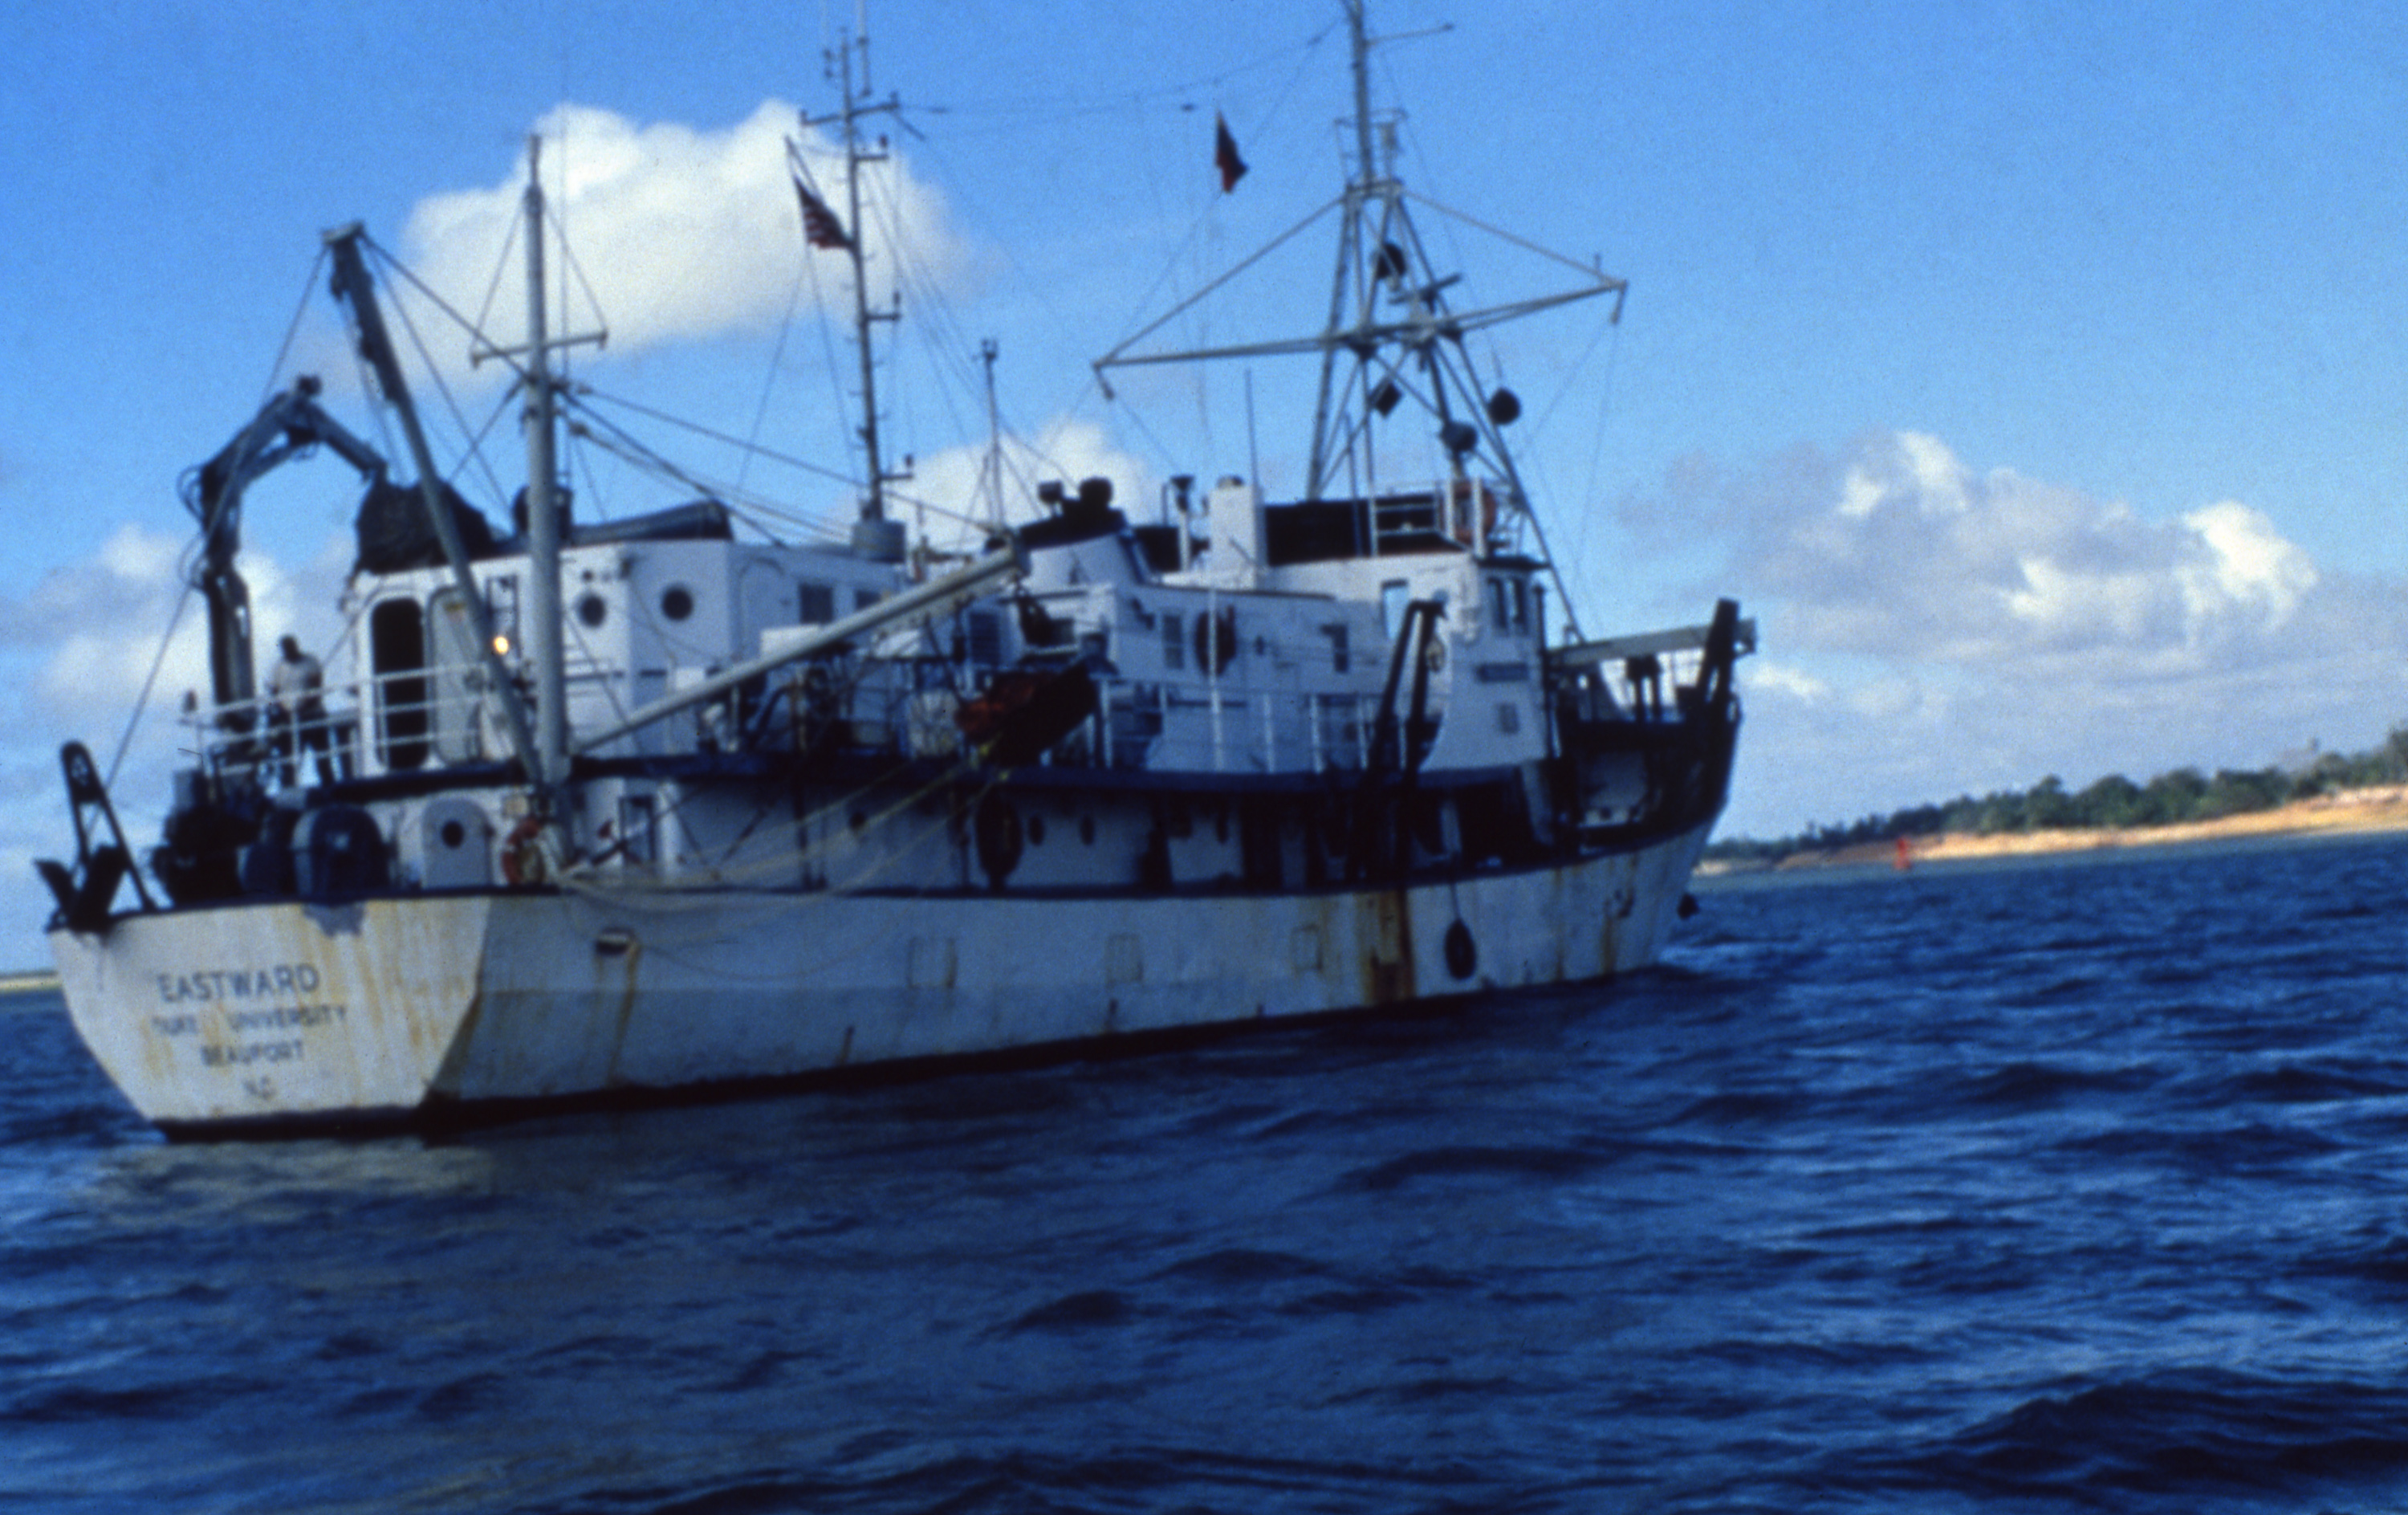 A photo of the RV Eastward on the water.